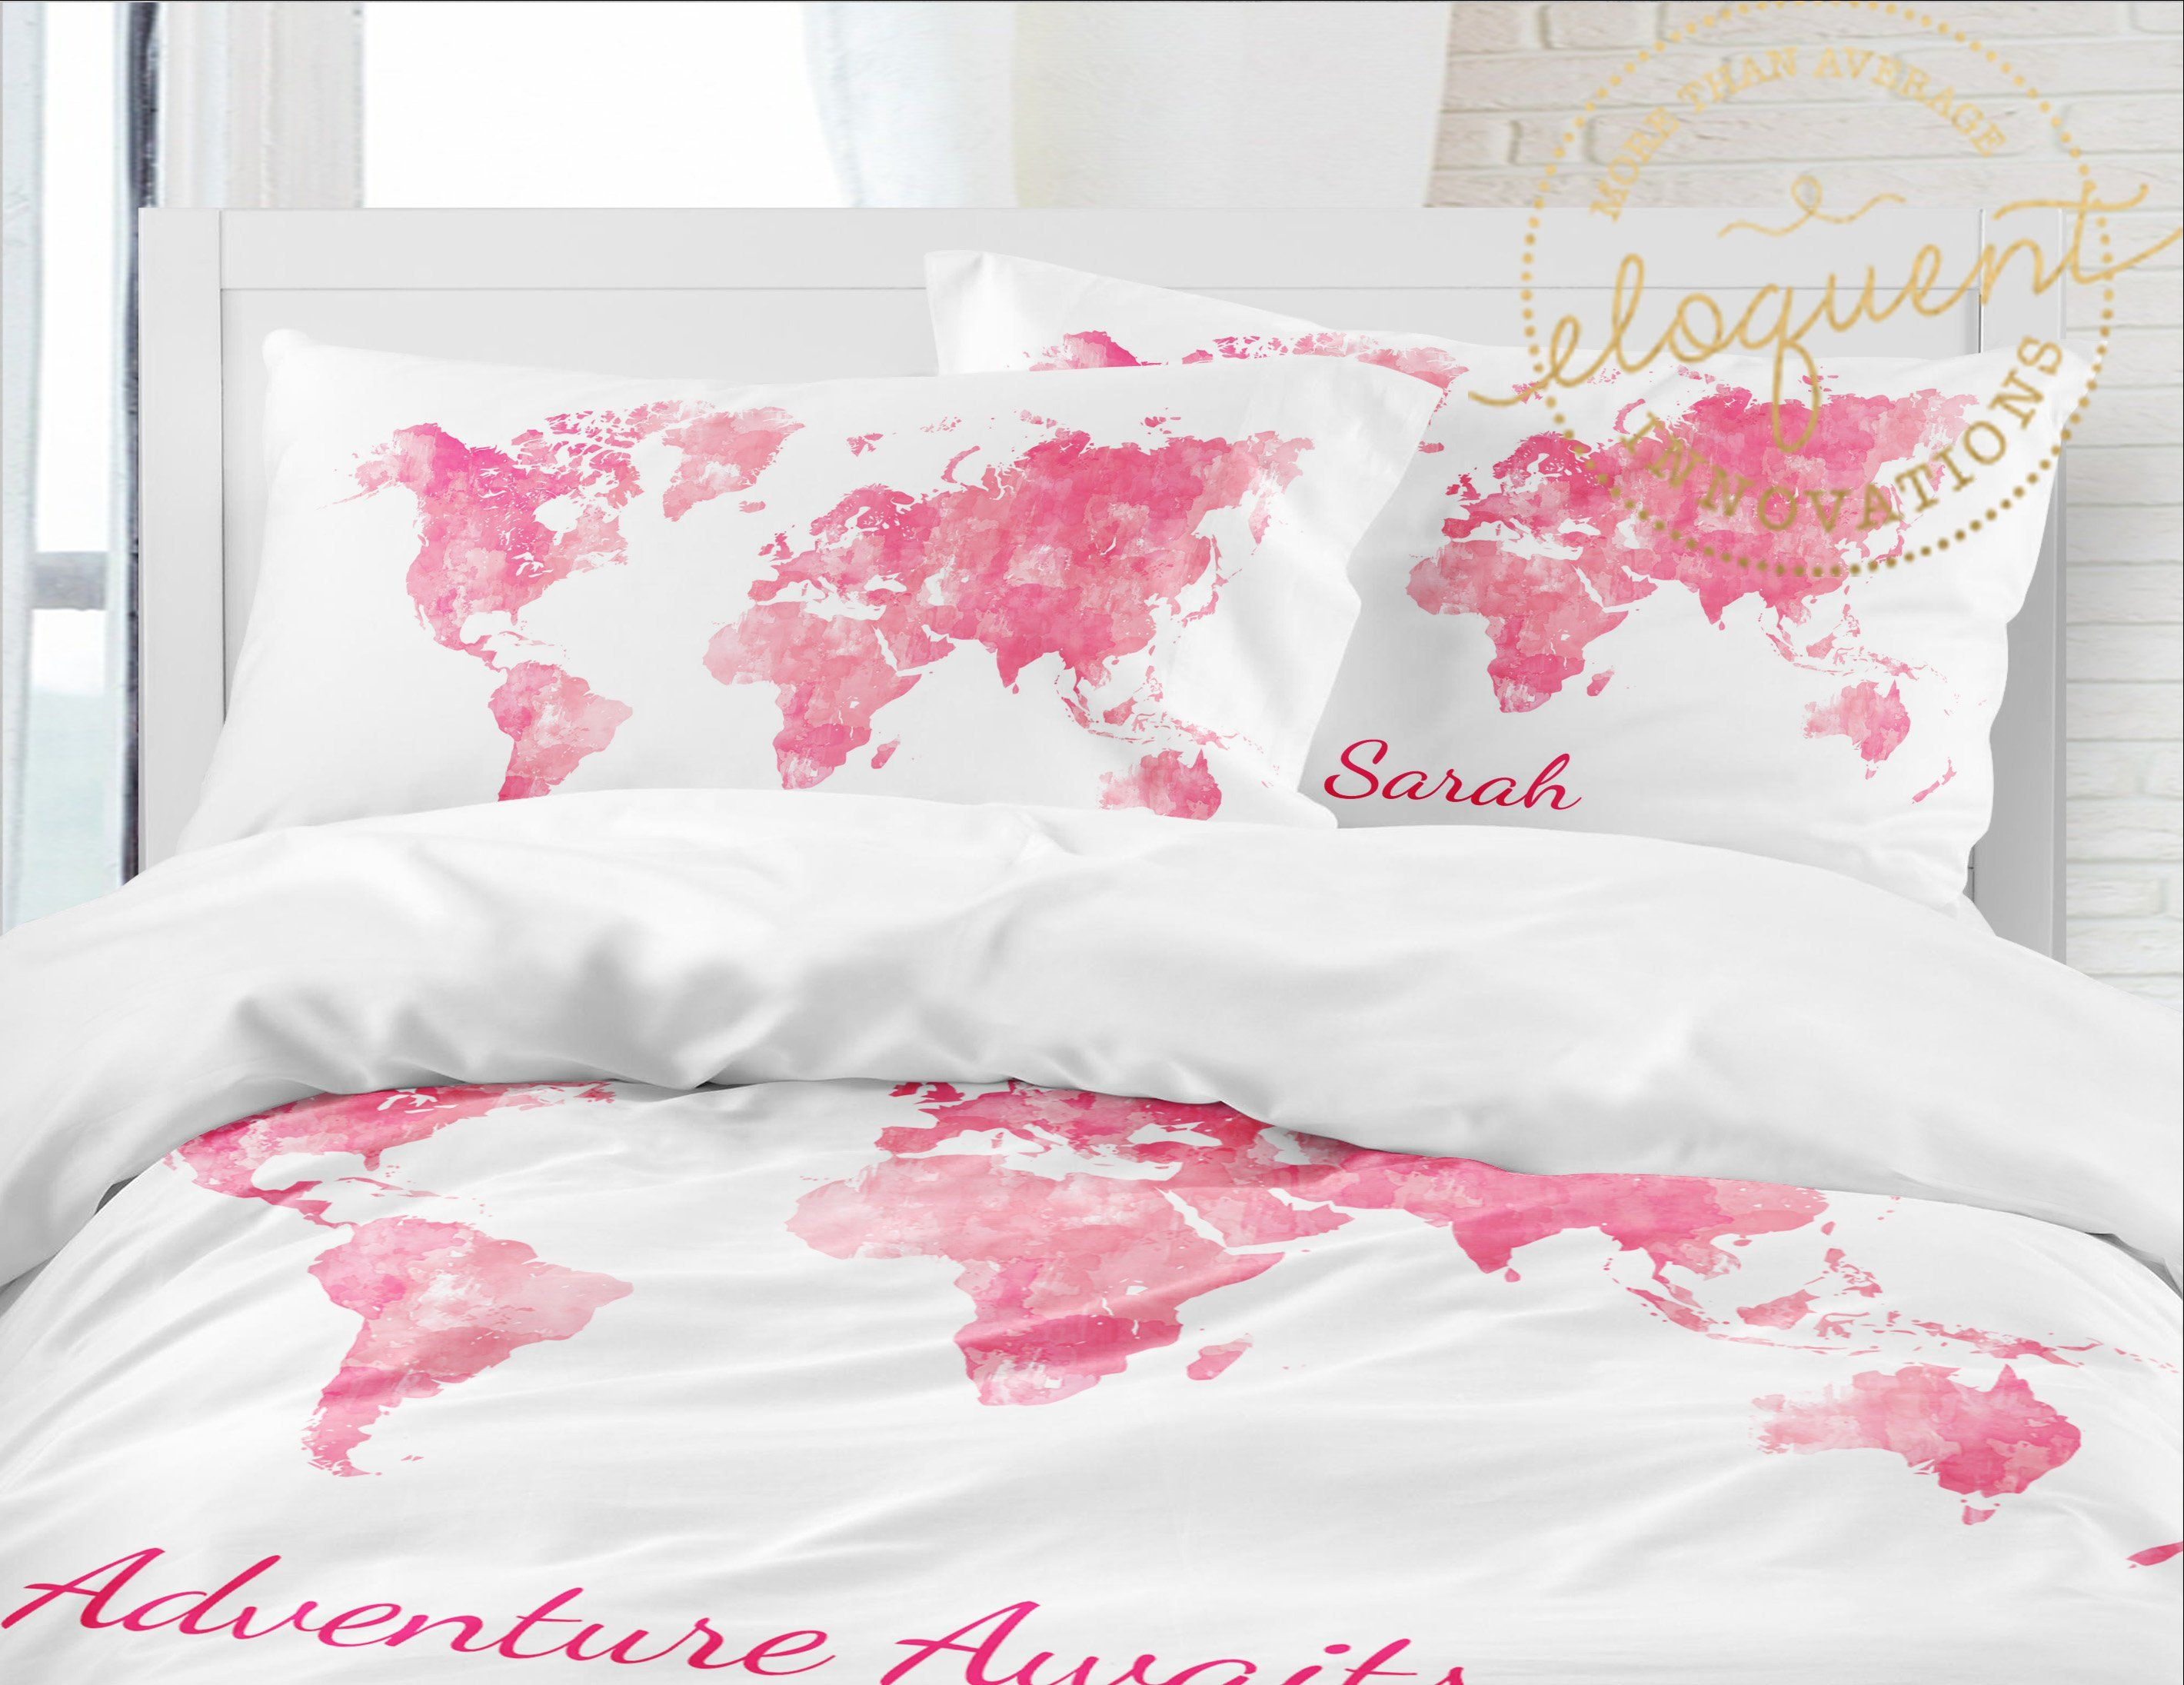 Map of the World Duvet Cover - Girls Pink Bedding Set - Personalized ...